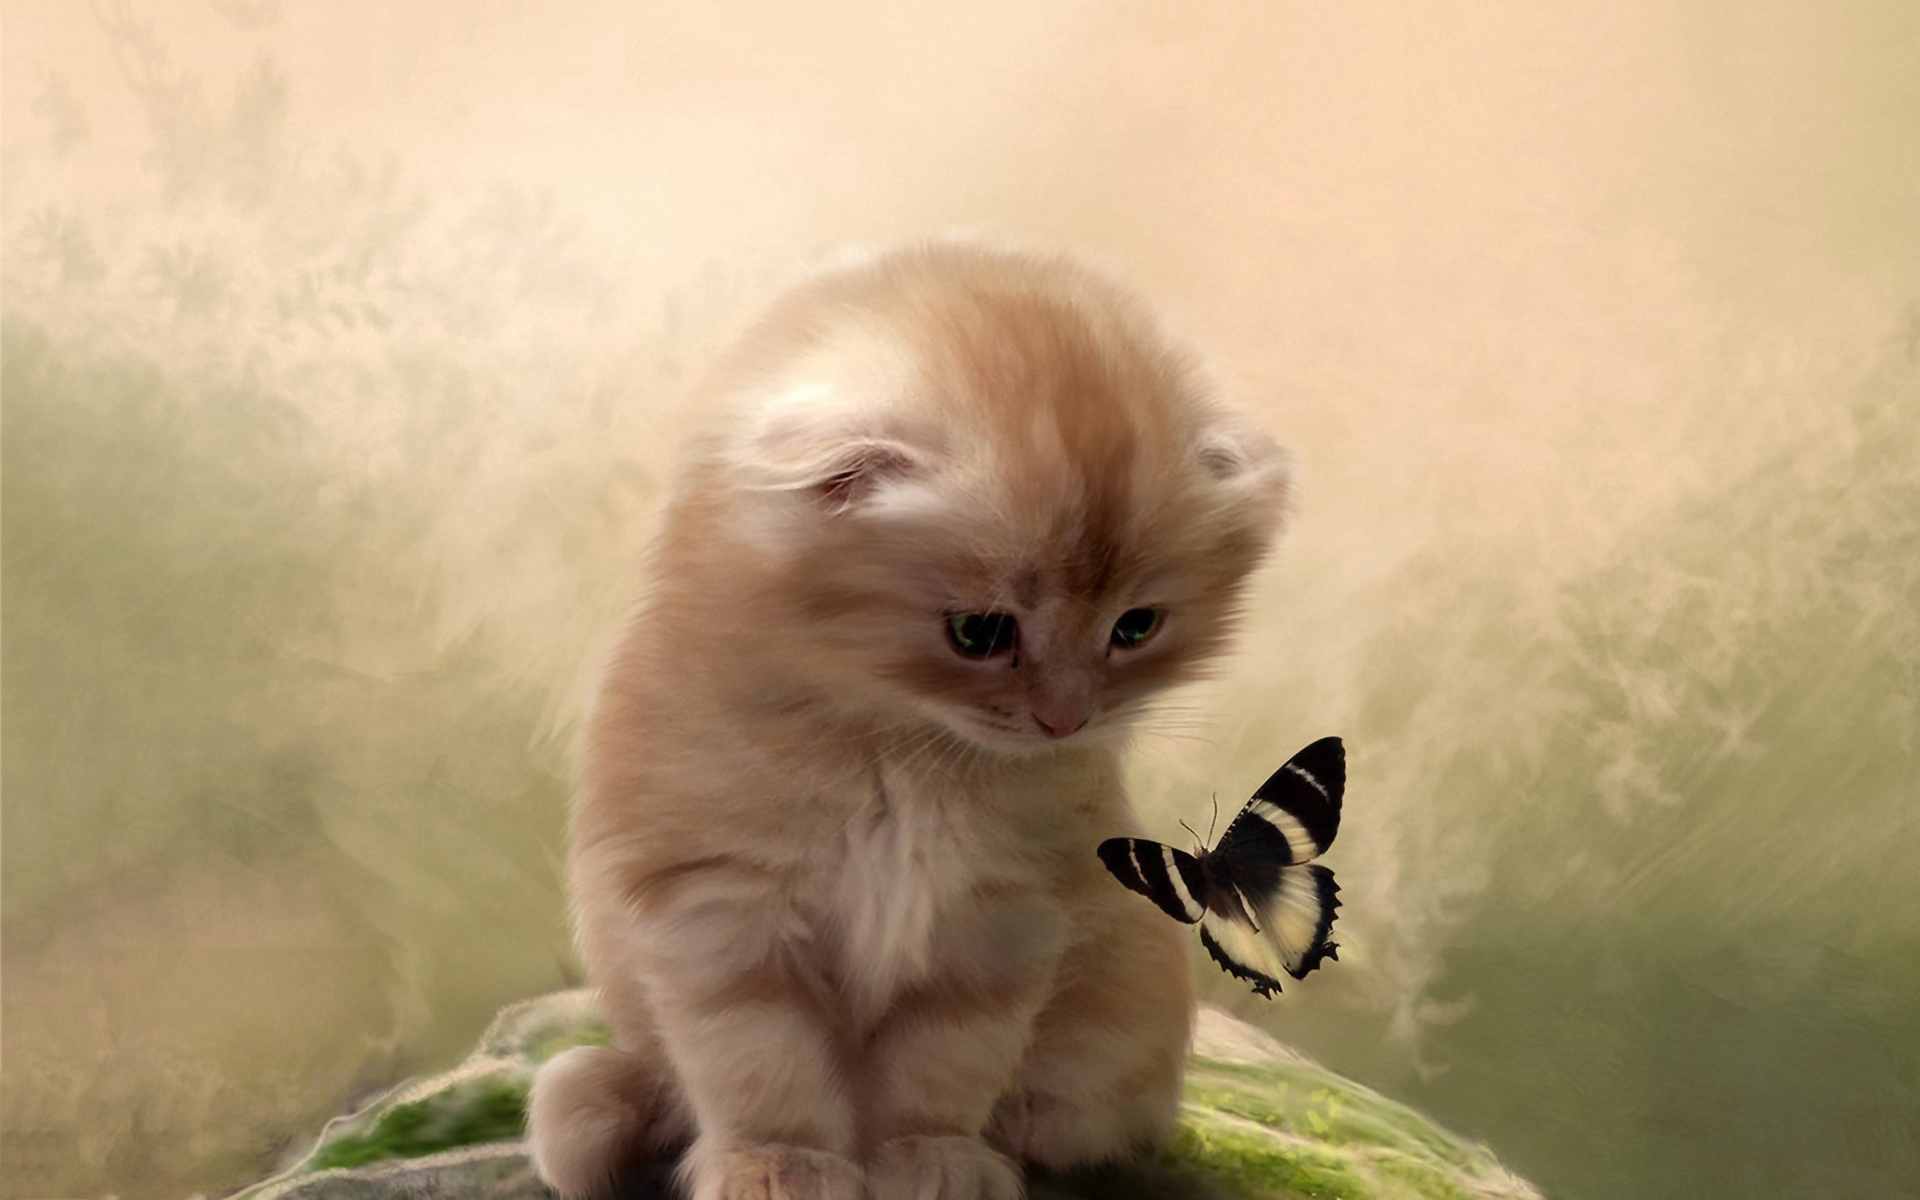 Kitty butterfly Wallpapers Pictures Photos Images. «